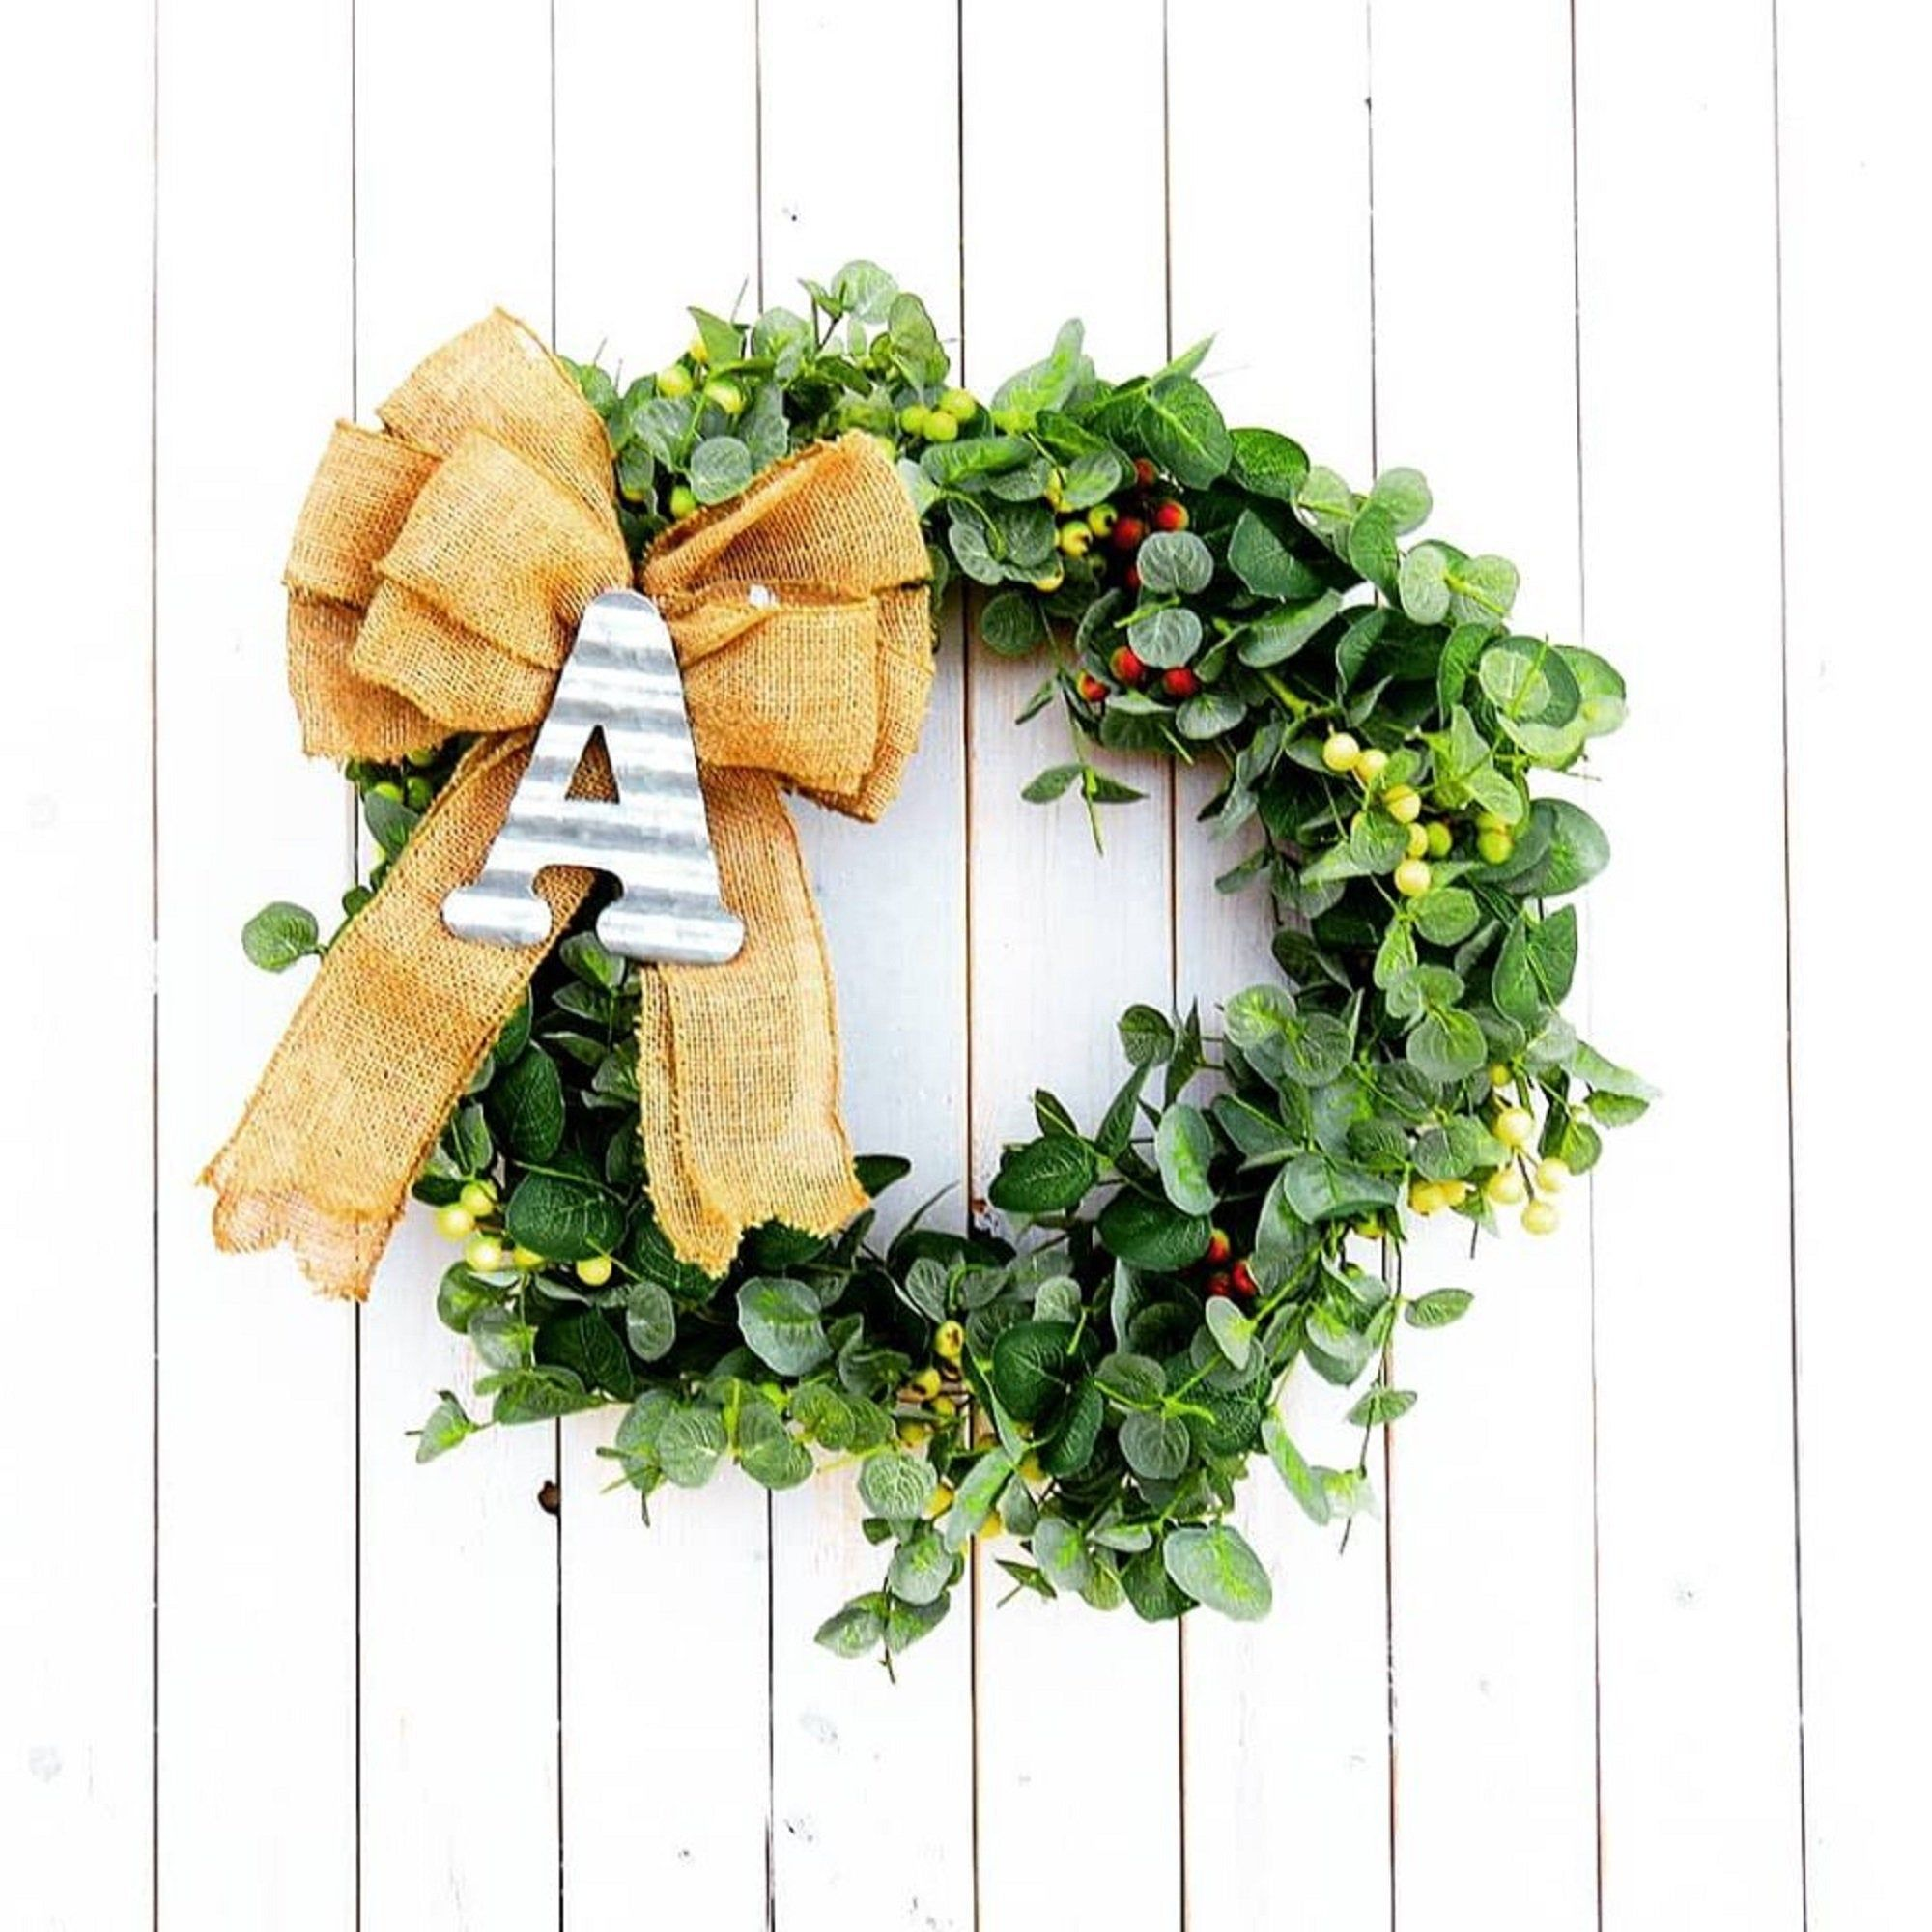 Wreaths Farmhouse Mini Wreath For Front Door Eucalyptus Wreath With Bow Holiday Wreath Small Artificial Country Wreath Etsy Wreath Gift With Images Etsy Wreaths Mini Wreaths Wreaths